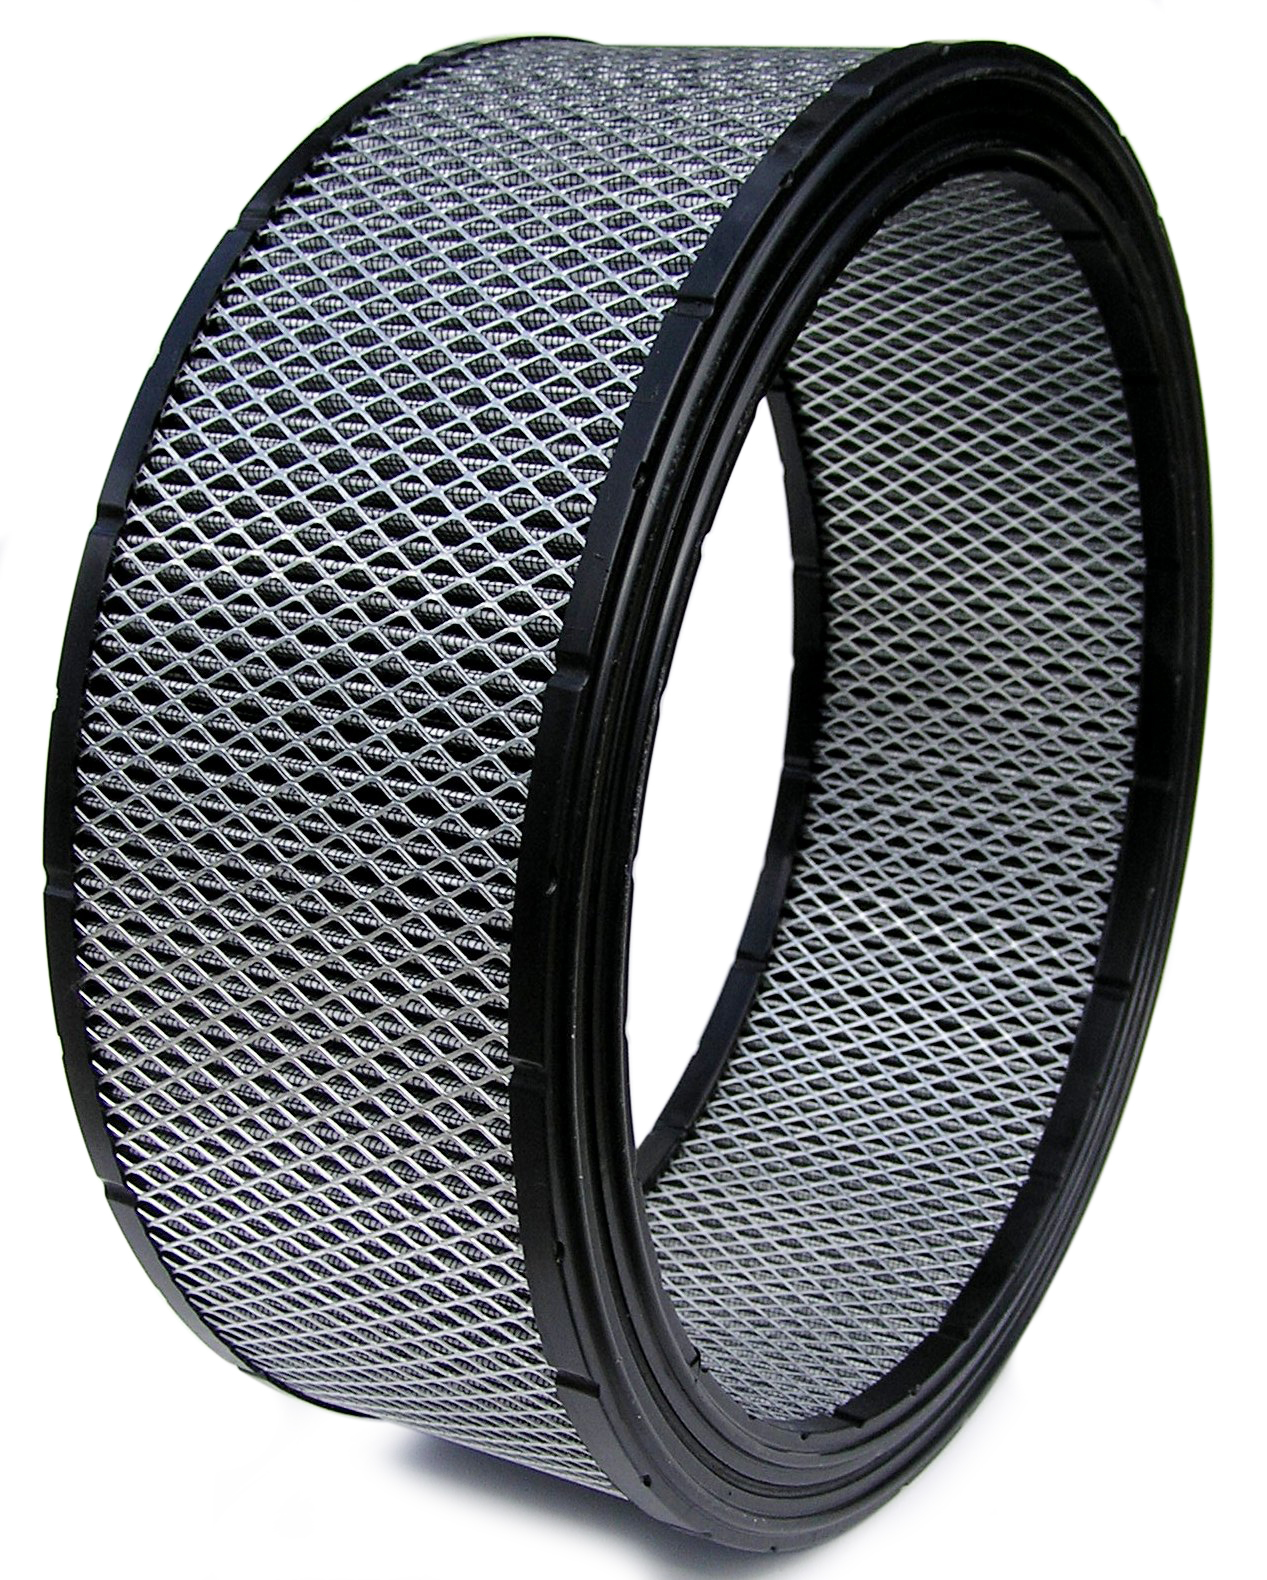 Air Filter 14in x 5in Dirt / Off Road